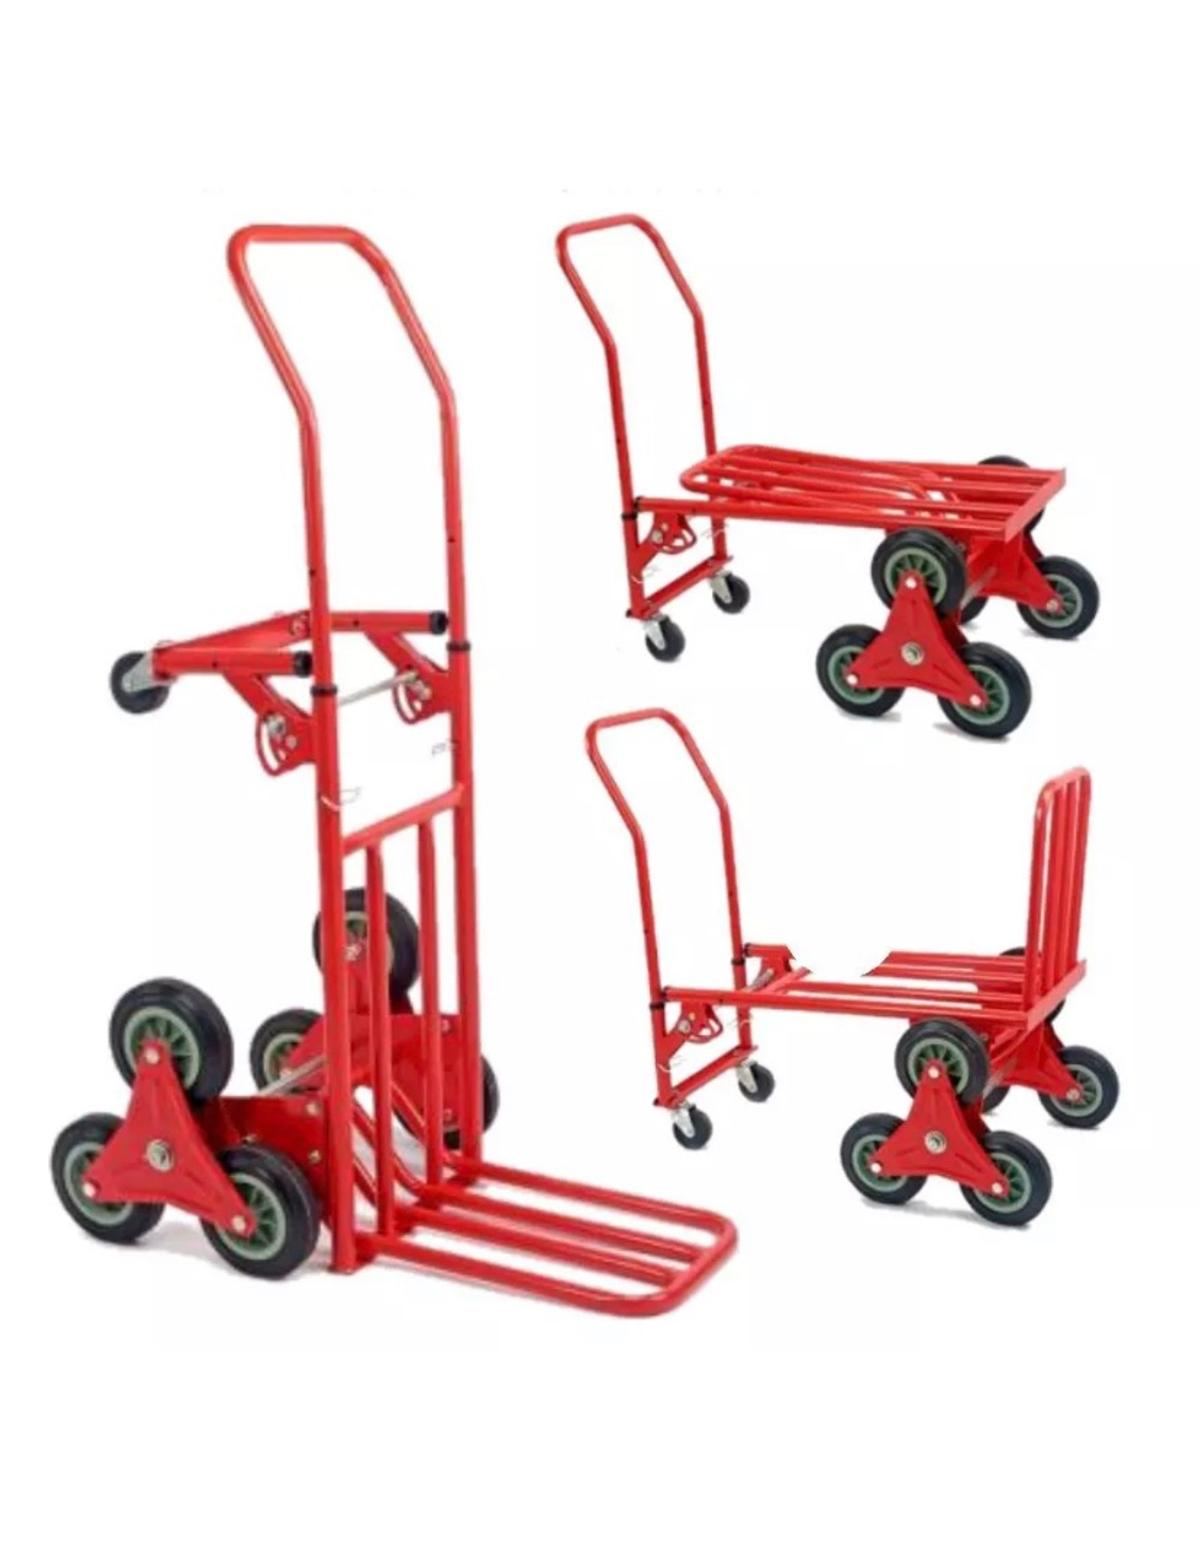 6 wheel stair climbing trolley in W8 Chelsea for £30 00 for